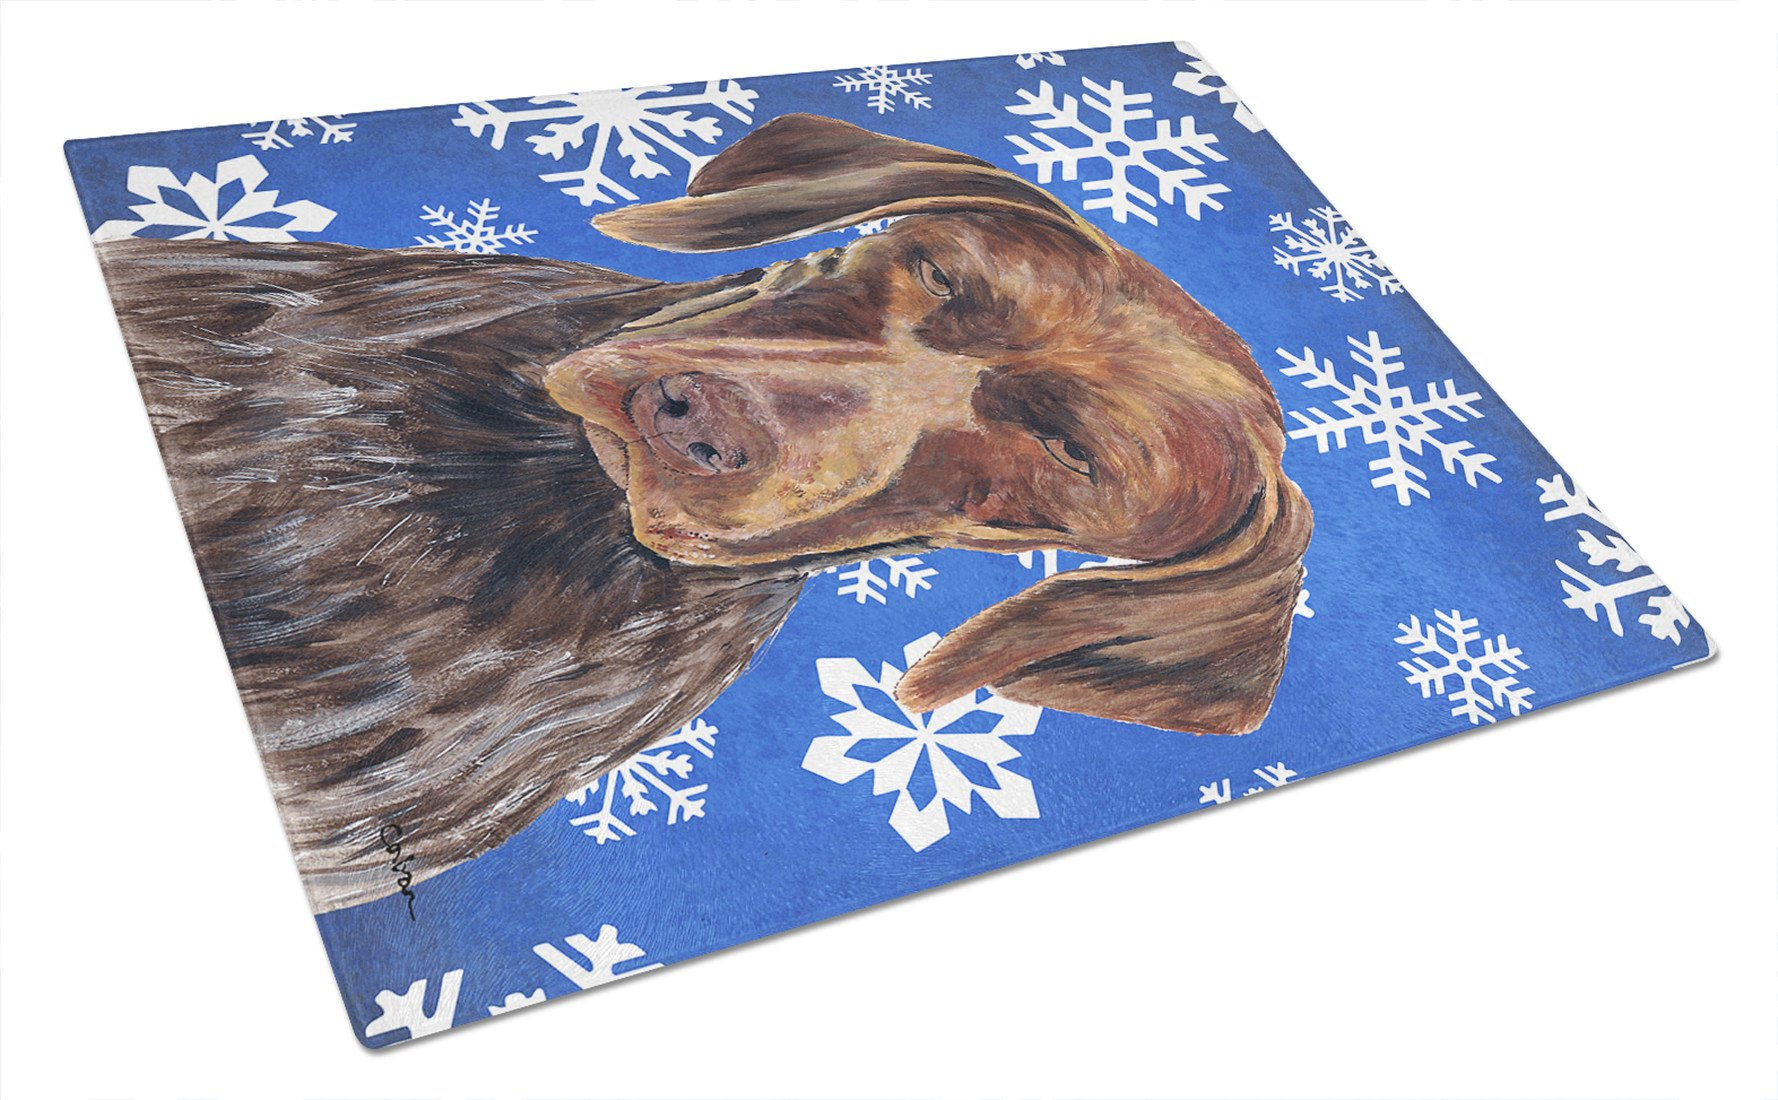 German Shorthaired Pointer Winter Snowflakes Holiday Glass Cutting Board Large by Caroline's Treasures